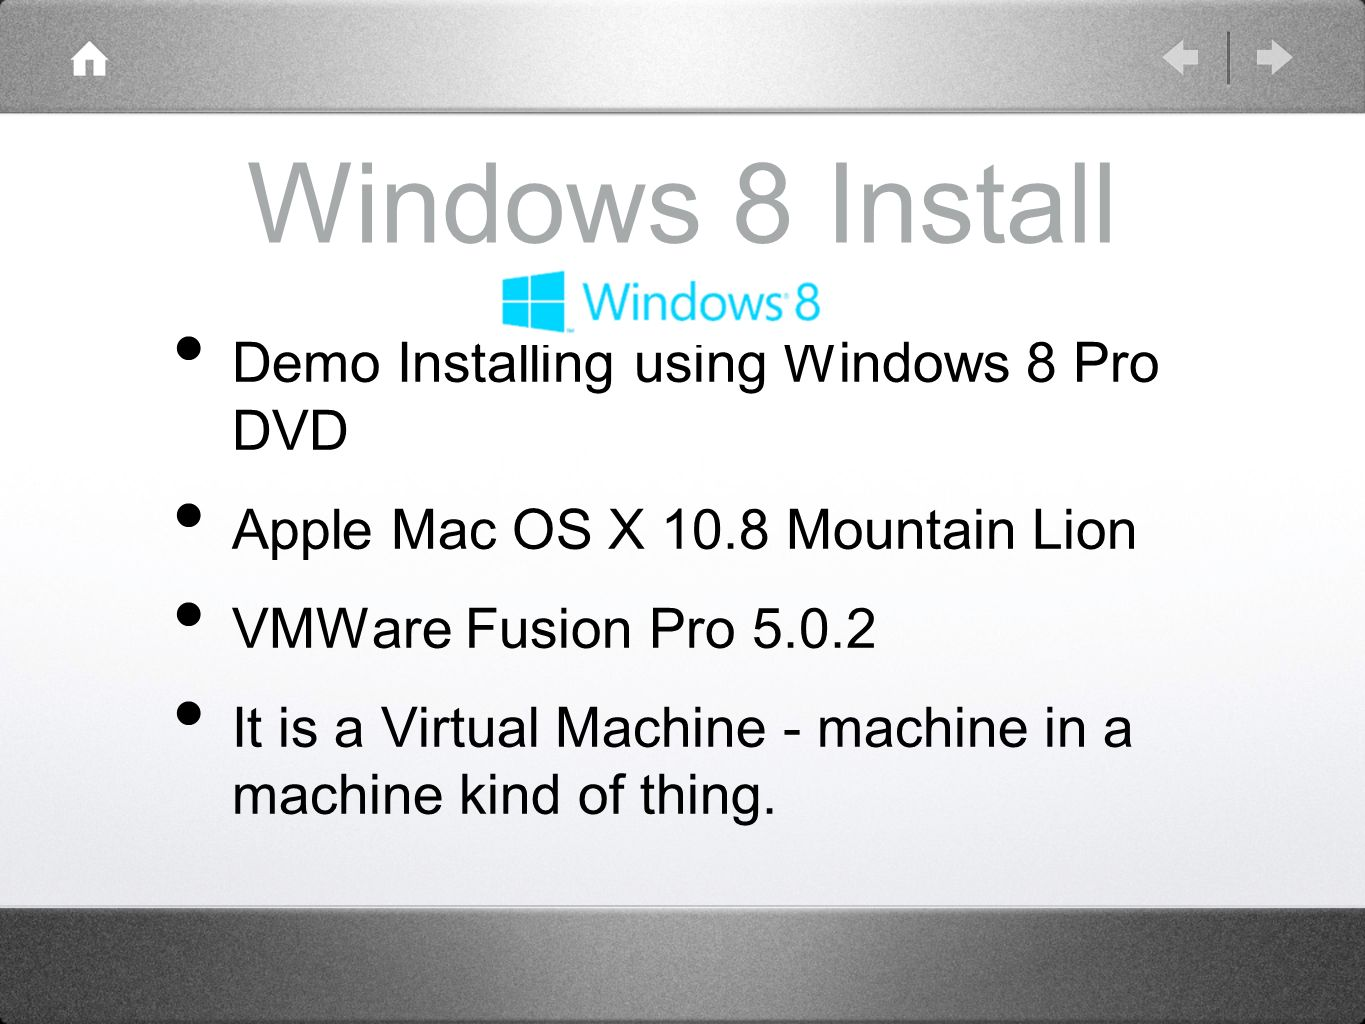 Windows 8 Install Demo Installing using Windows 8 Pro DVD Apple Mac OS X 10.8 Mountain Lion VMWare Fusion Pro 5.0.2 It is a Virtual Machine - machine in a machine kind of thing.